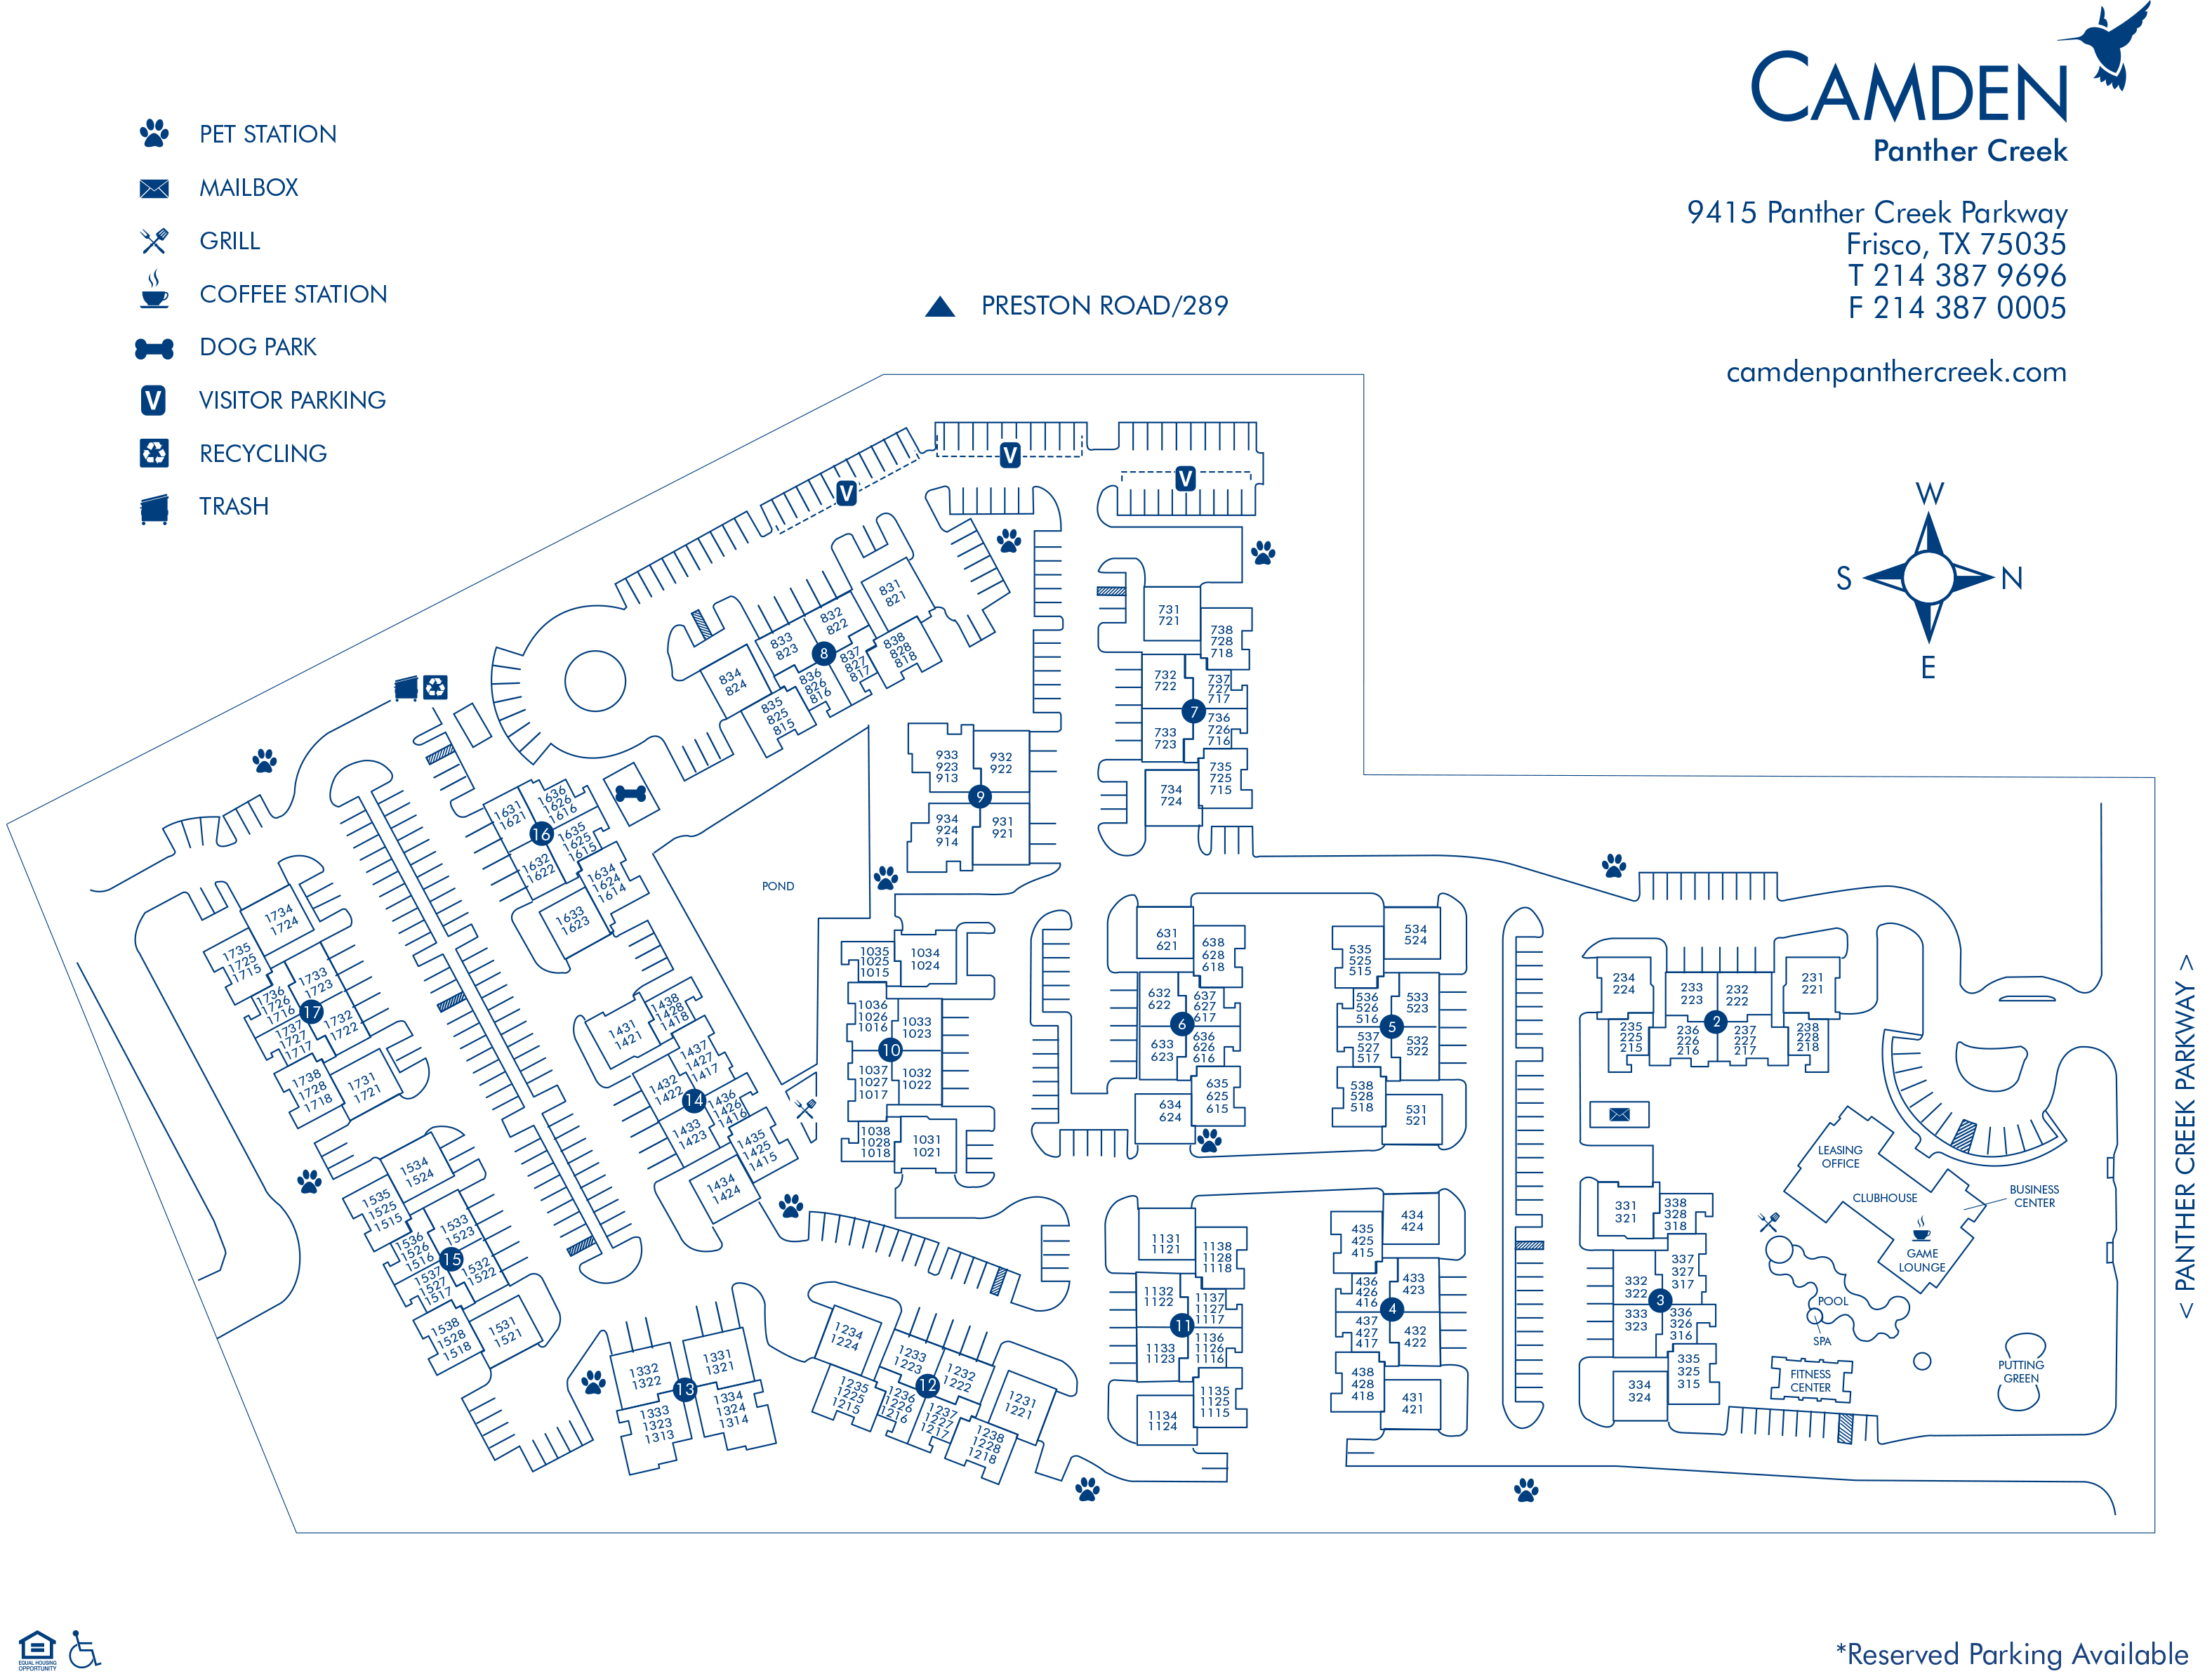 Camden Panther Creek on collin county community college, collin college building map, collin college mckinney tx map,